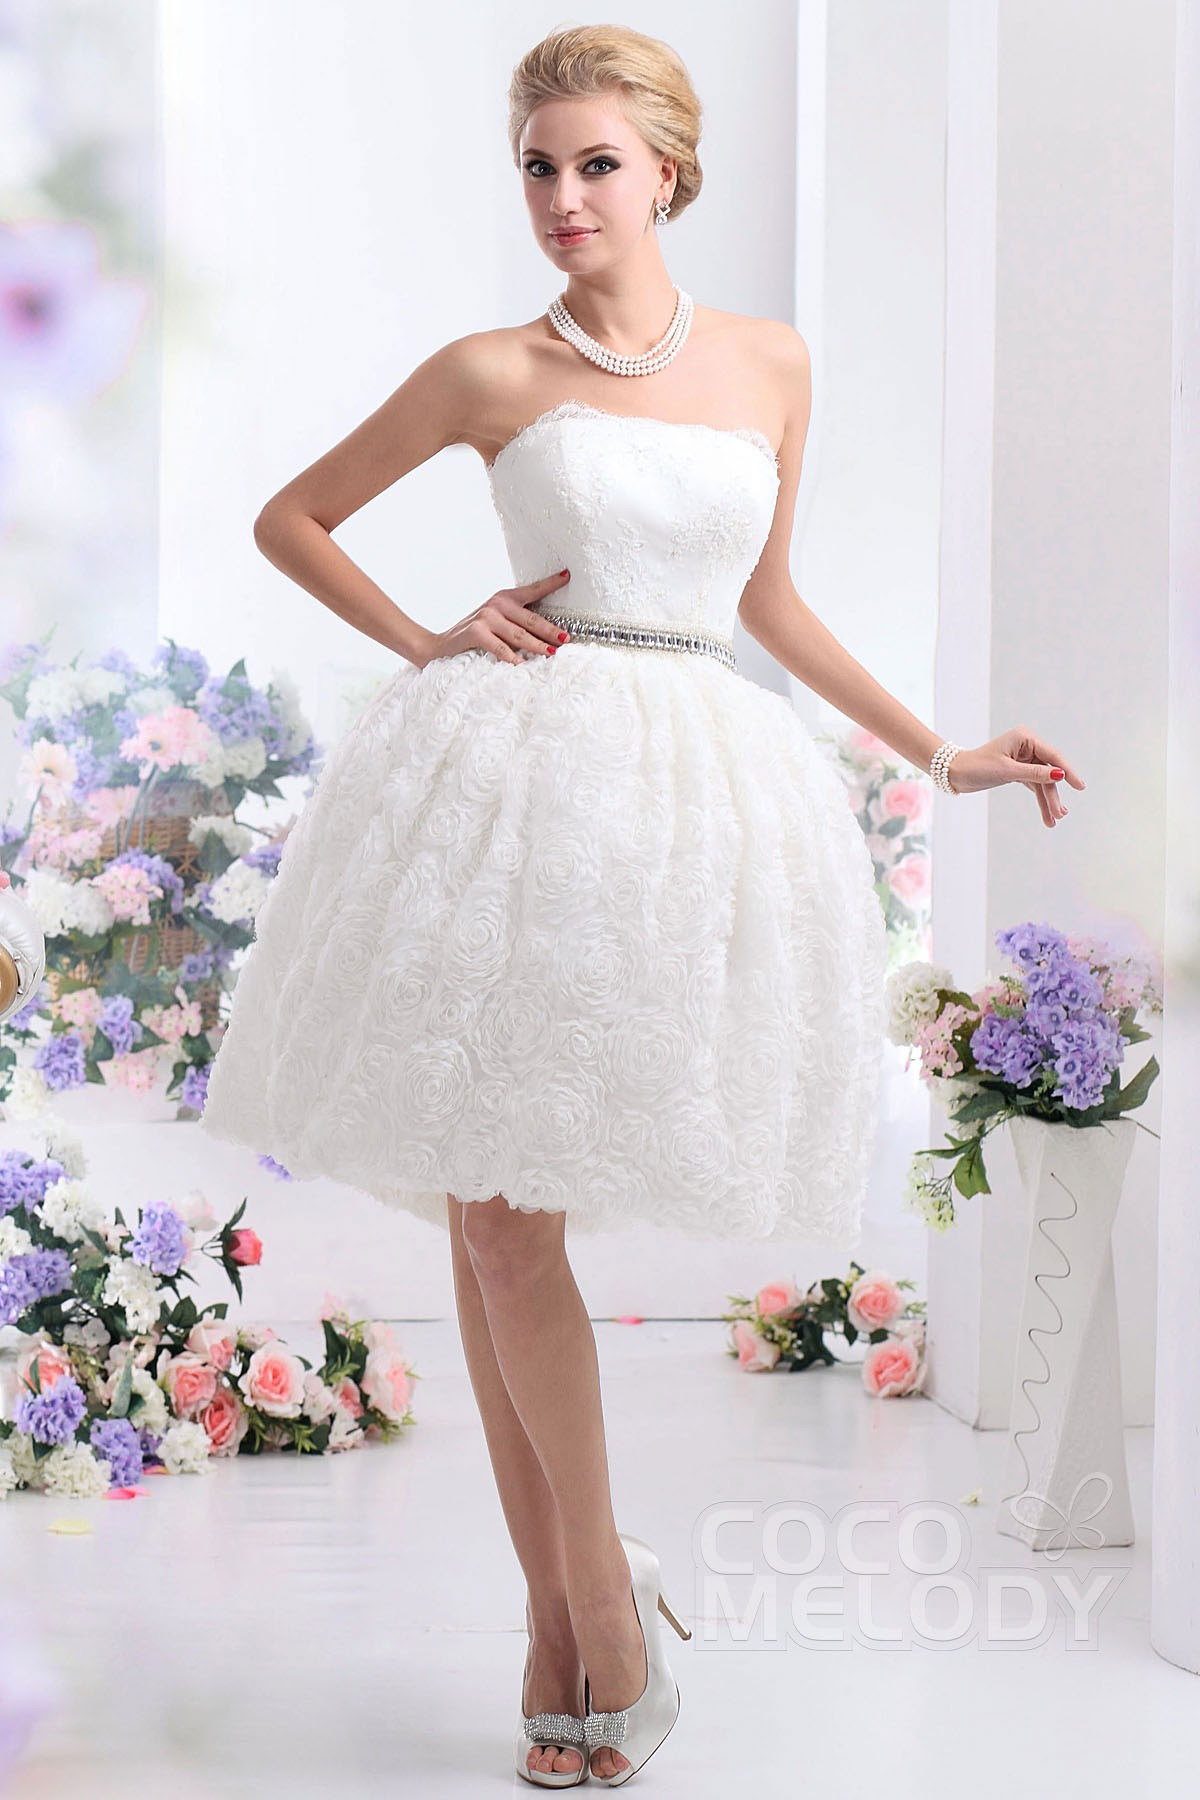 intricately beaded embroidery on circular tulle ball gown wedding dress ball gown wedding dress Intricately Beaded Embroidery on Circular Tulle Ball Gown Morilee Bridal Wedding Dress